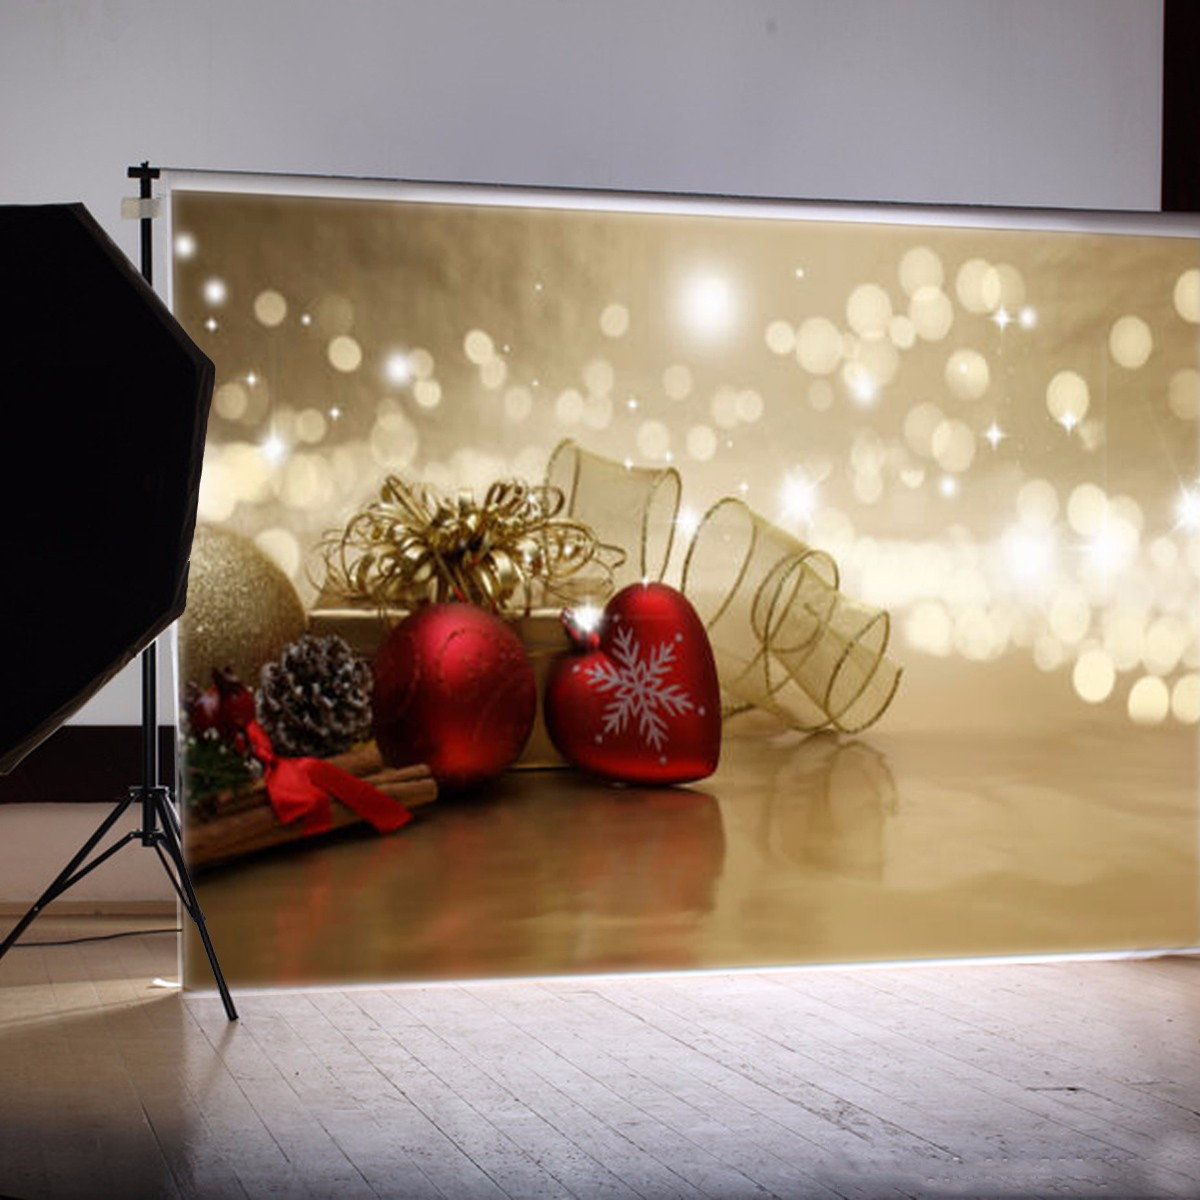 7X5ft Vinyl Photography Studio Background Fabric Christmas Decorations Gift photographic Backdrop